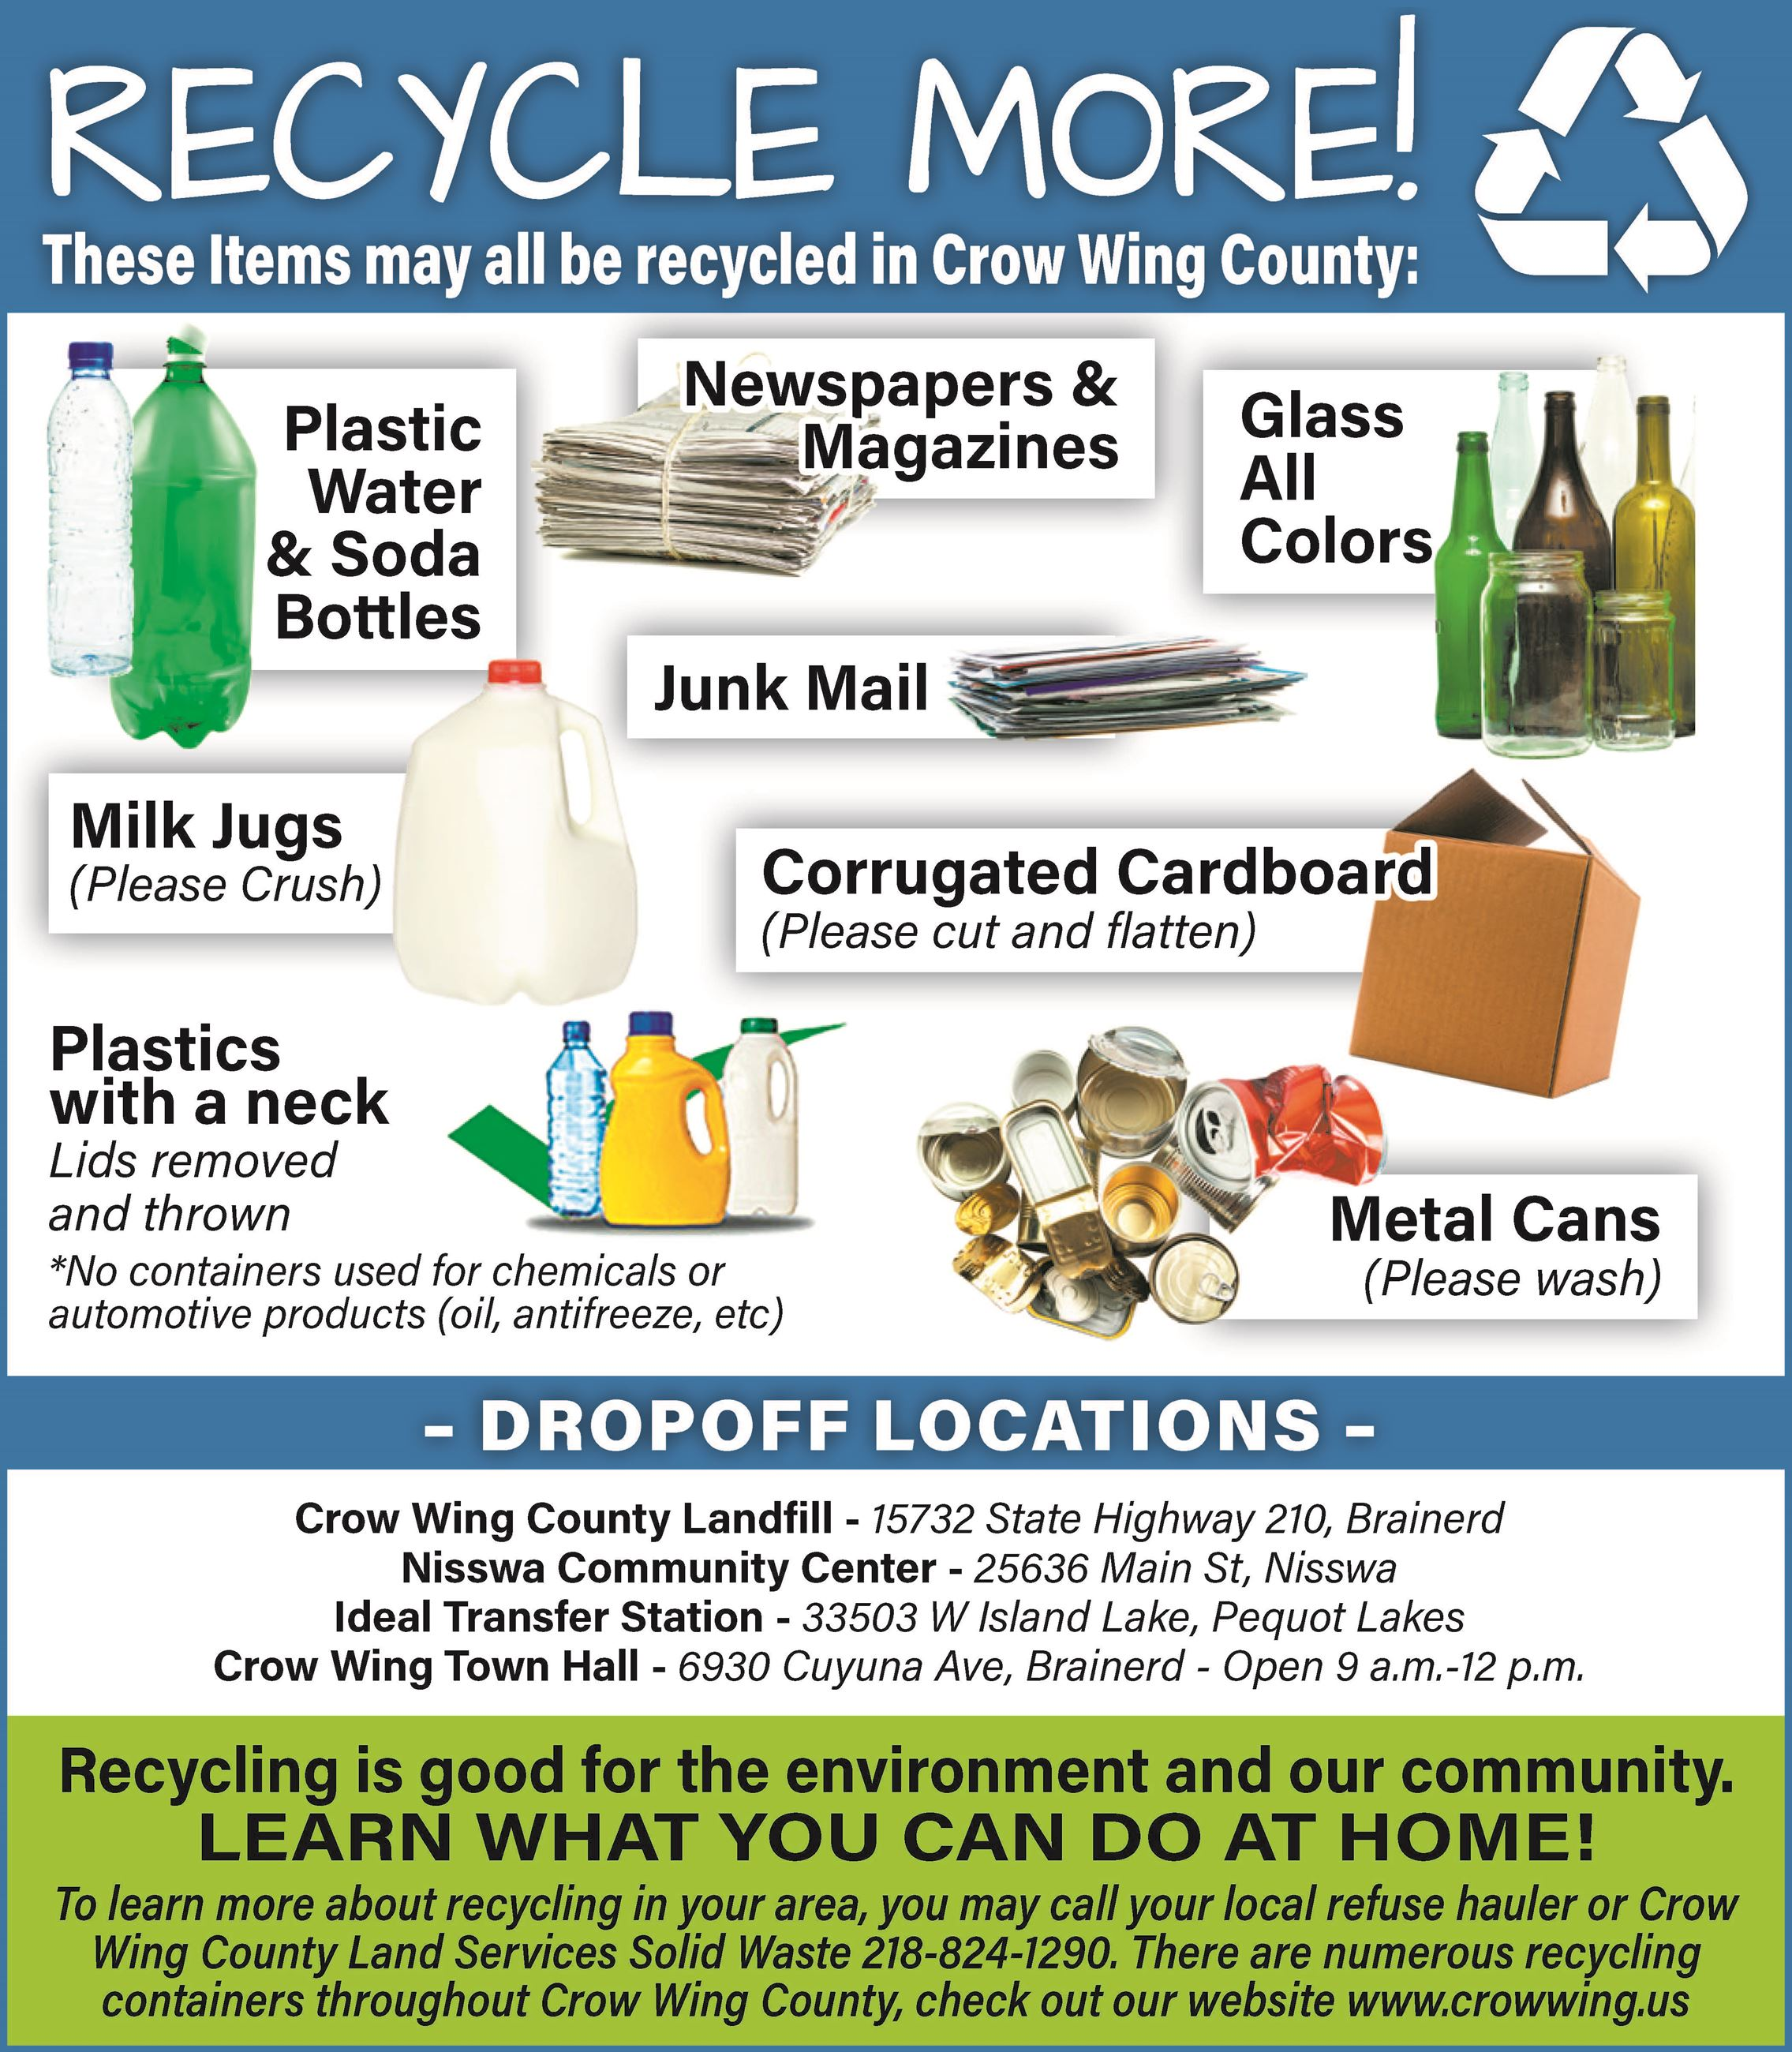 recycle ad updated 6-16-20 Opens in new window